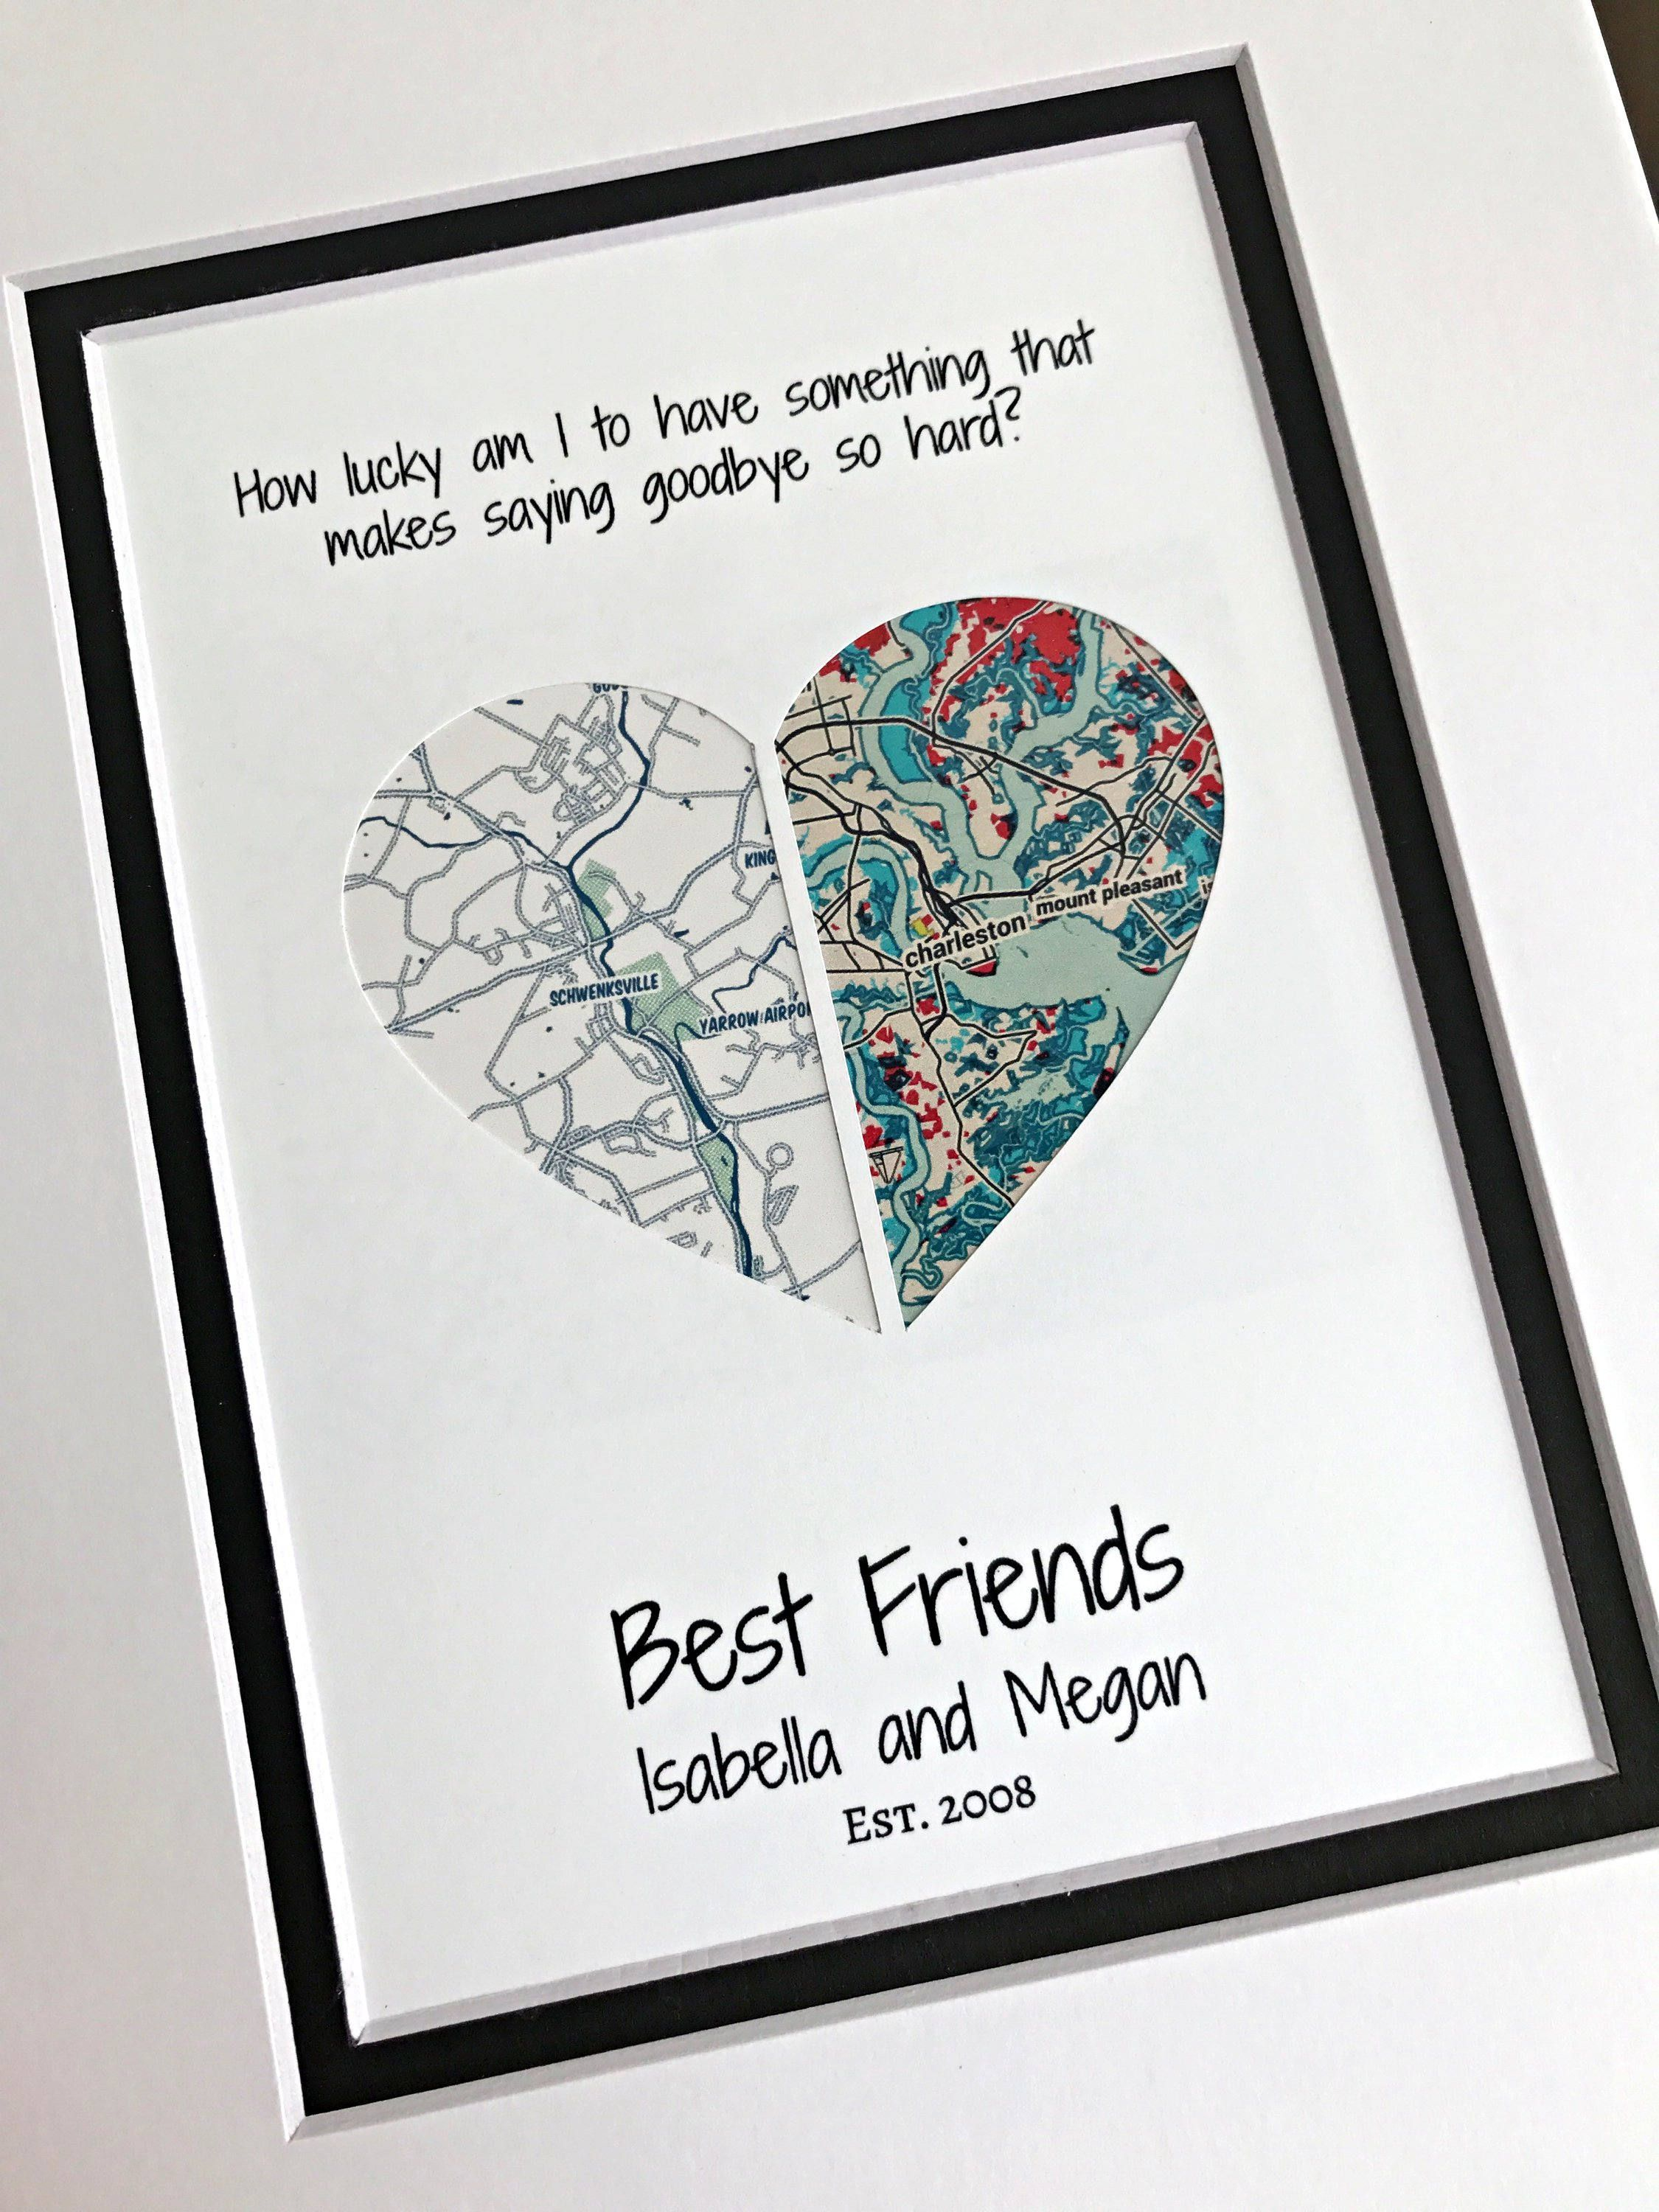 Marvellous Friends Friend Going Away Gift Personalized Gifts Friend Gifts Friend Going Away Gift Personalized Gifts Adults Friend Gifts Buzzfeed gifts Best Friend Gifts